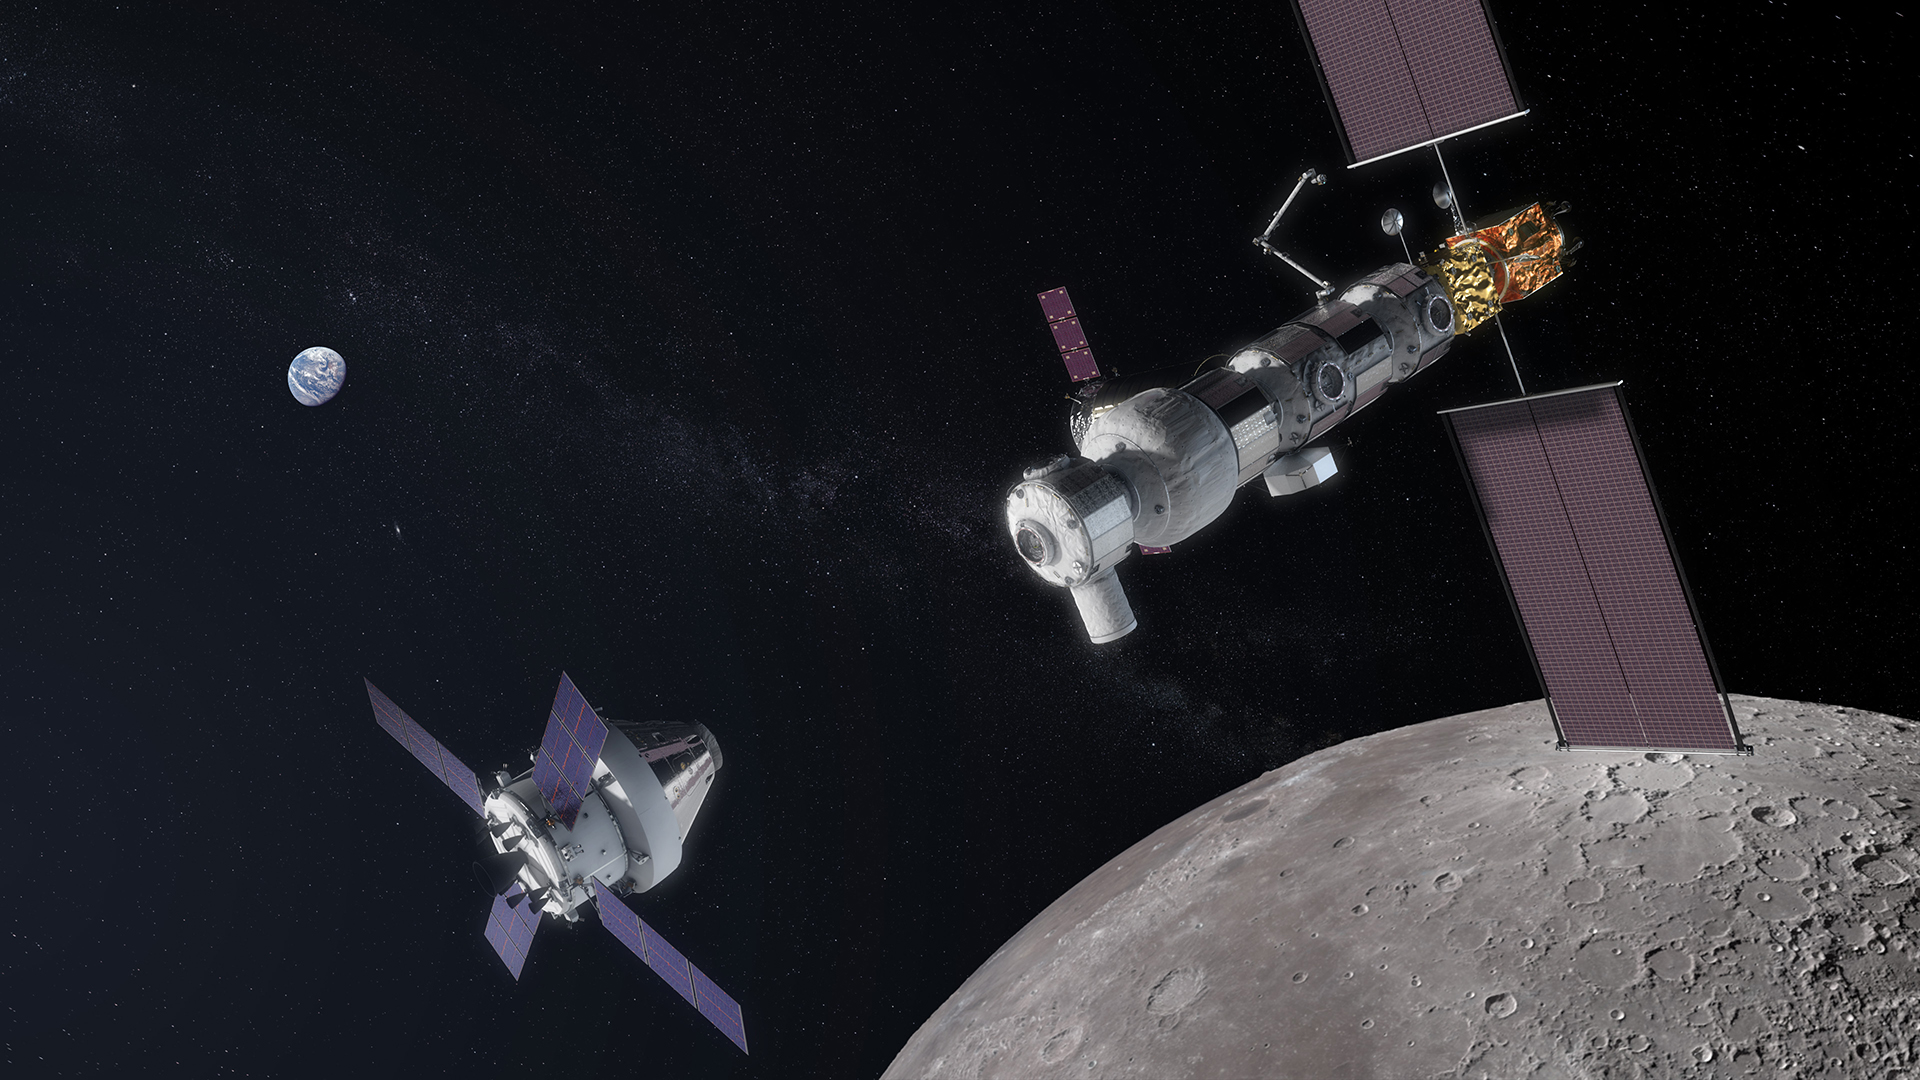 An illustration of NASA's proposed Lunar Gateway and Orion spacecraft.